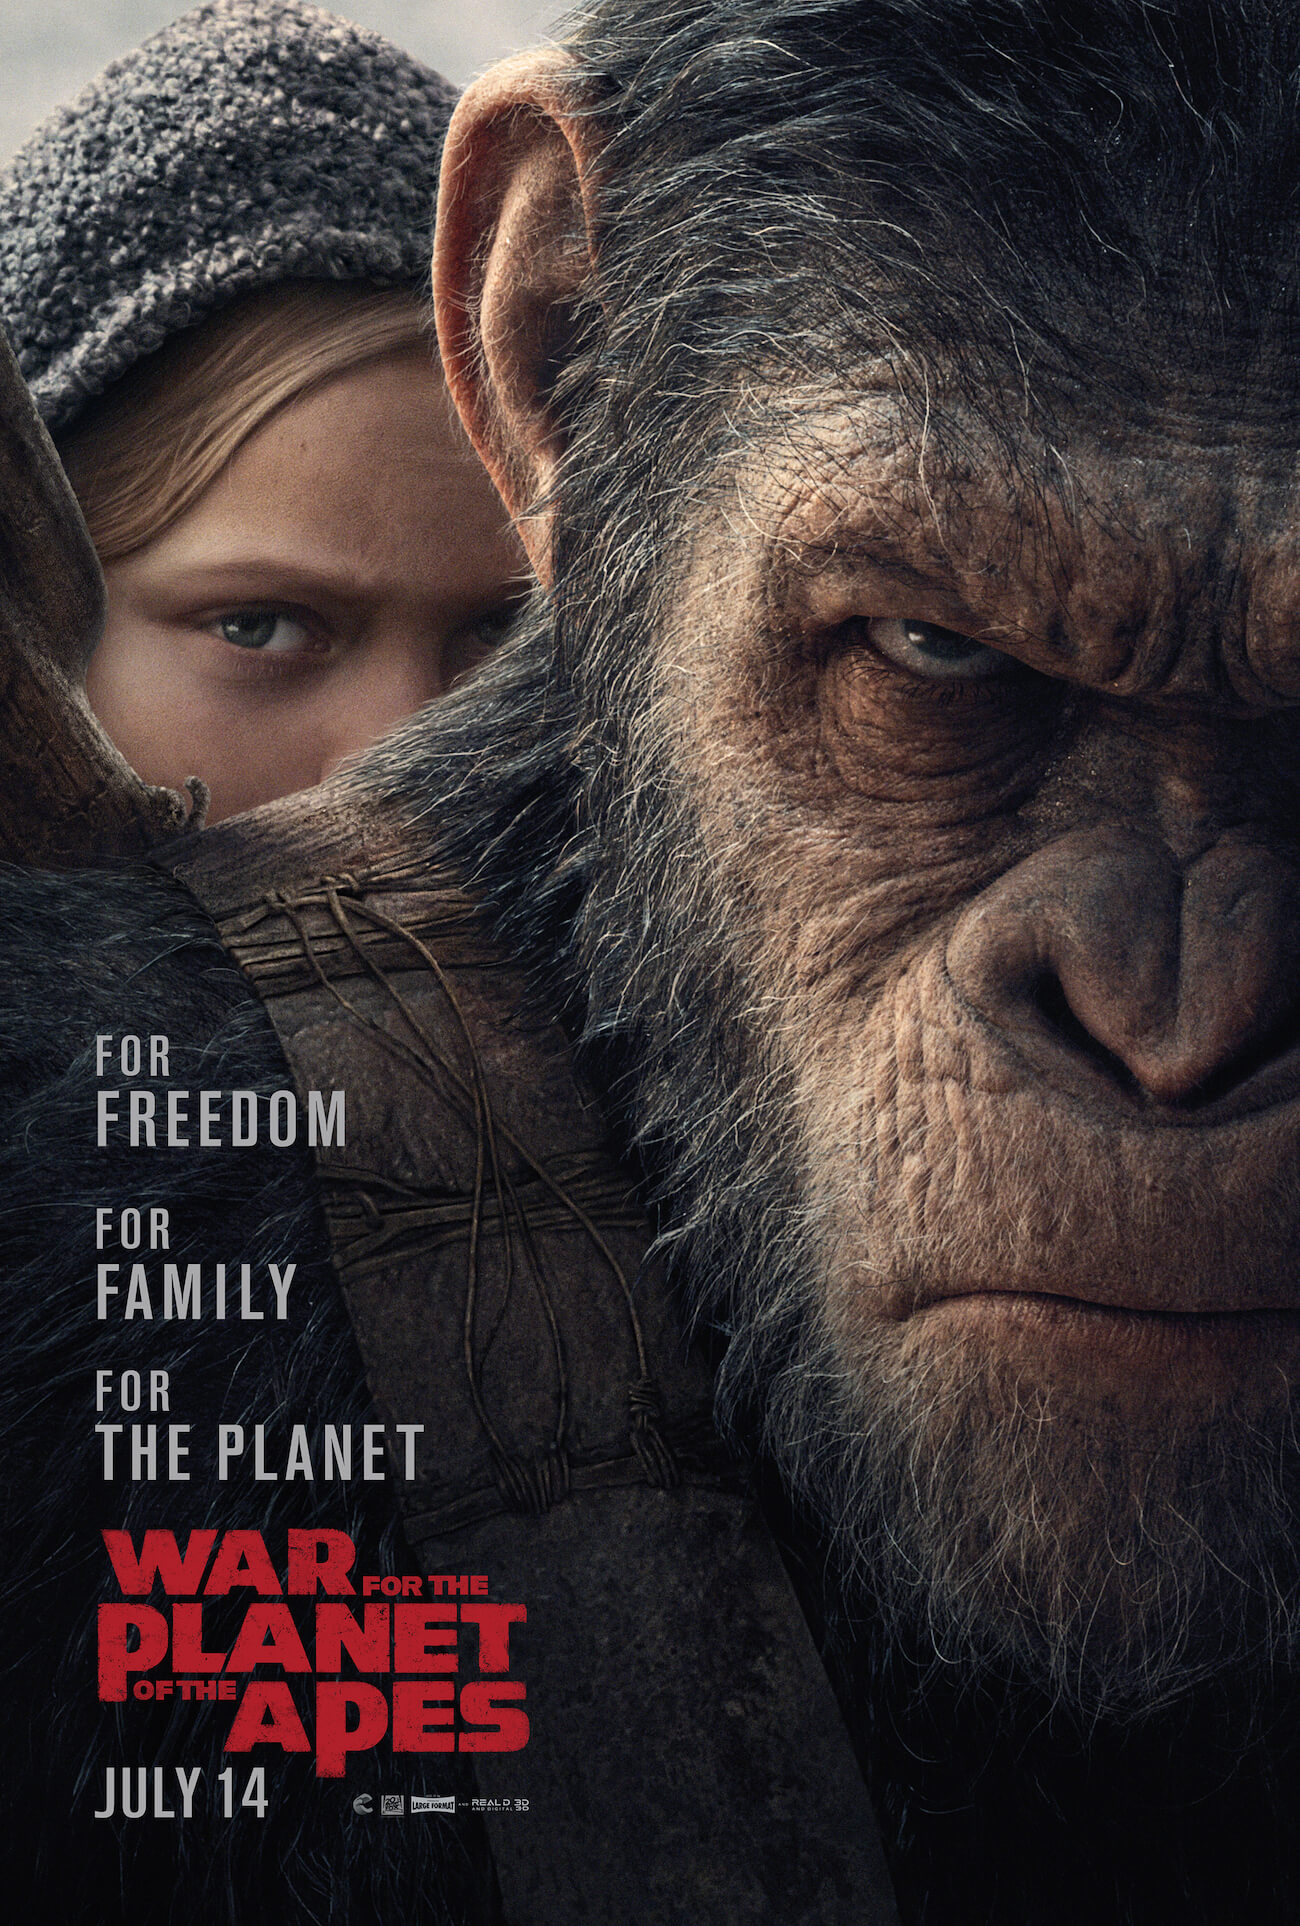 War for the planet of the apes poster new